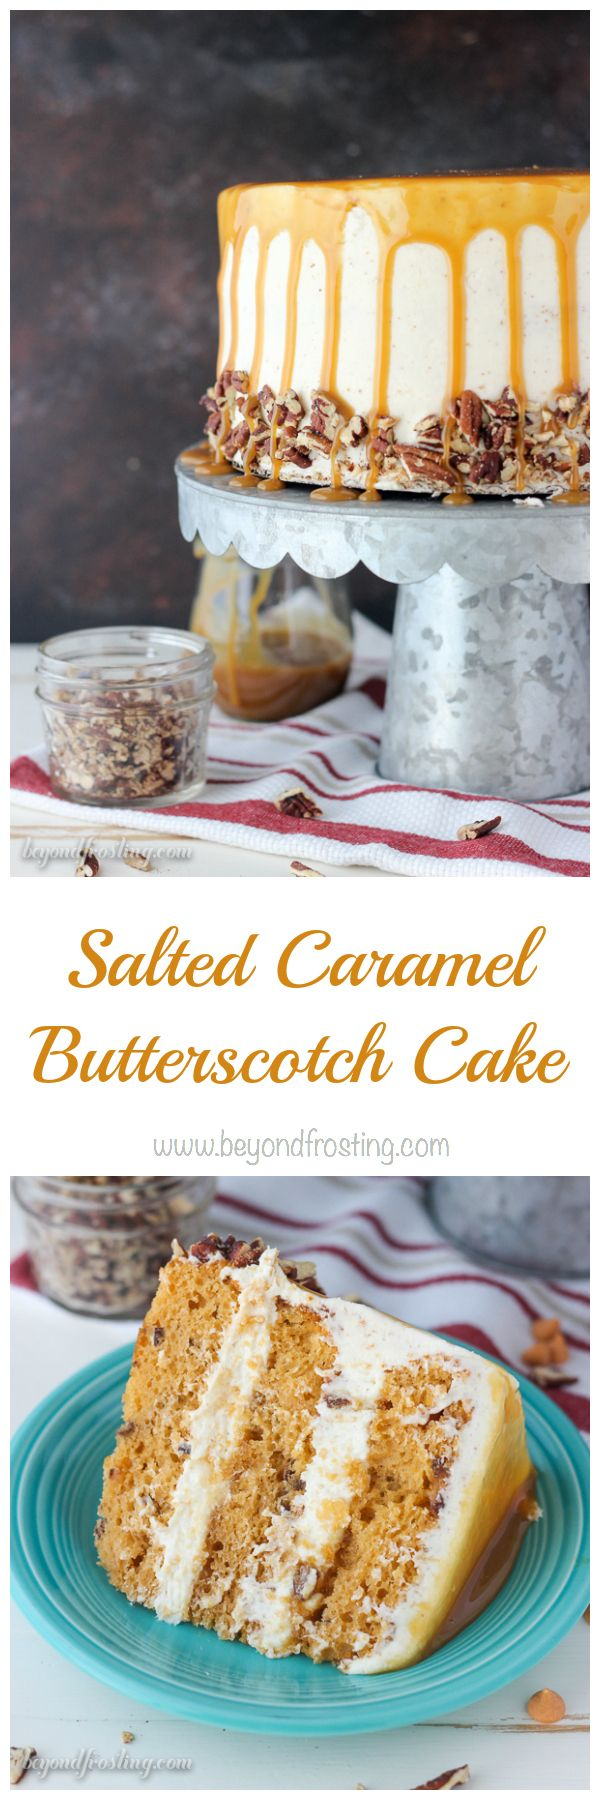 Salted Caramel Butterscotch Cake with Brown Butter Frosting! Oh yum....